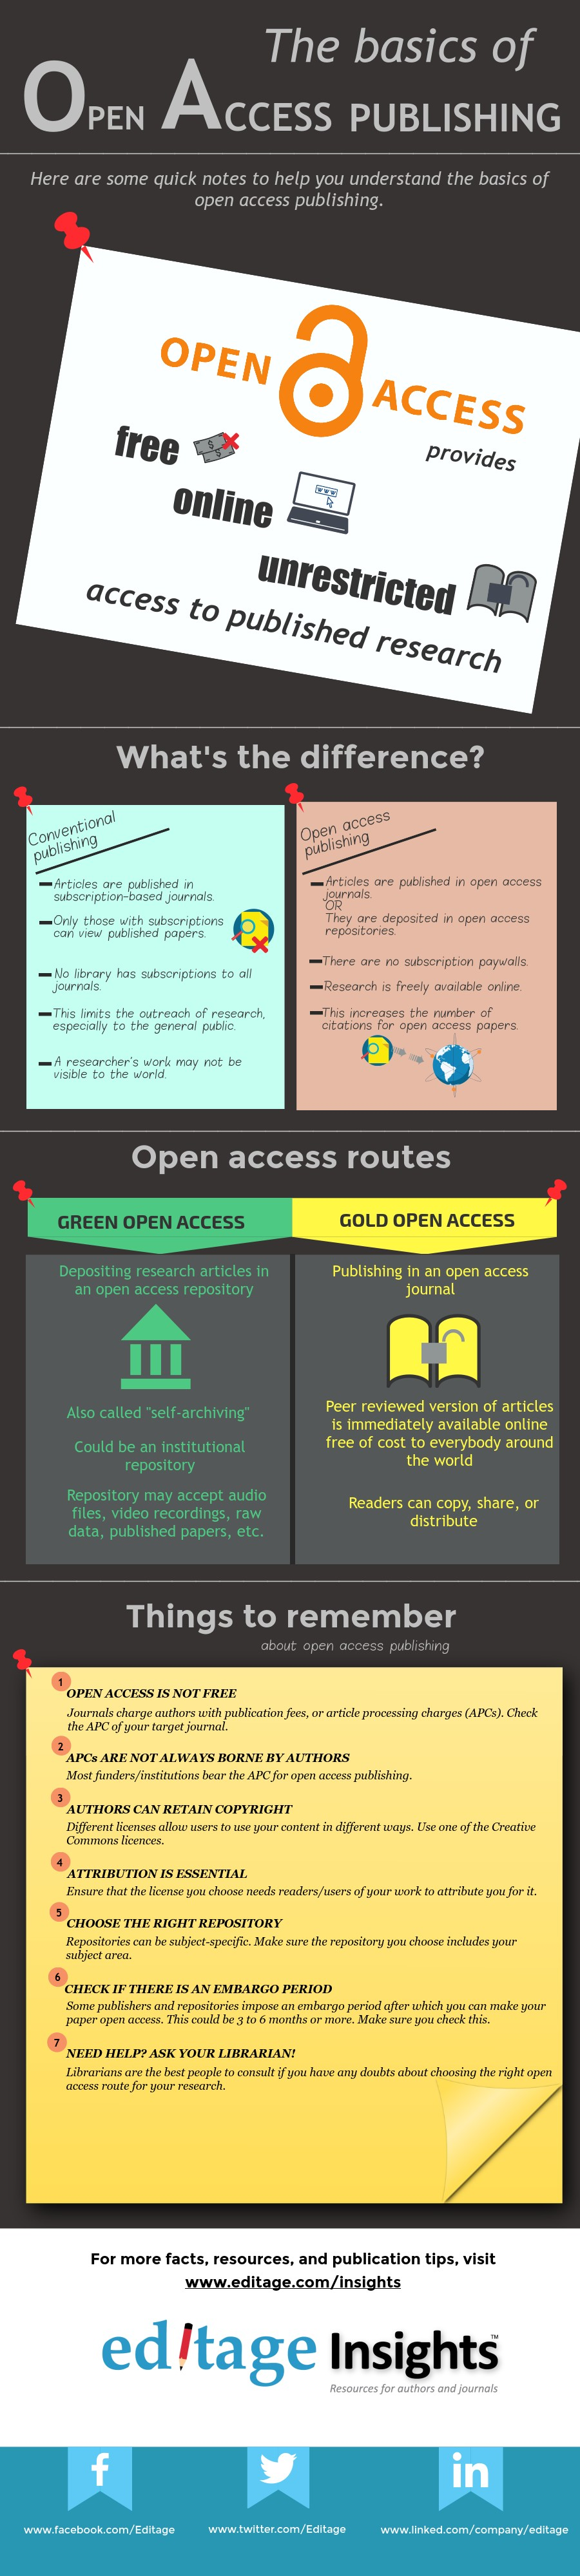 The basics of open access publishing